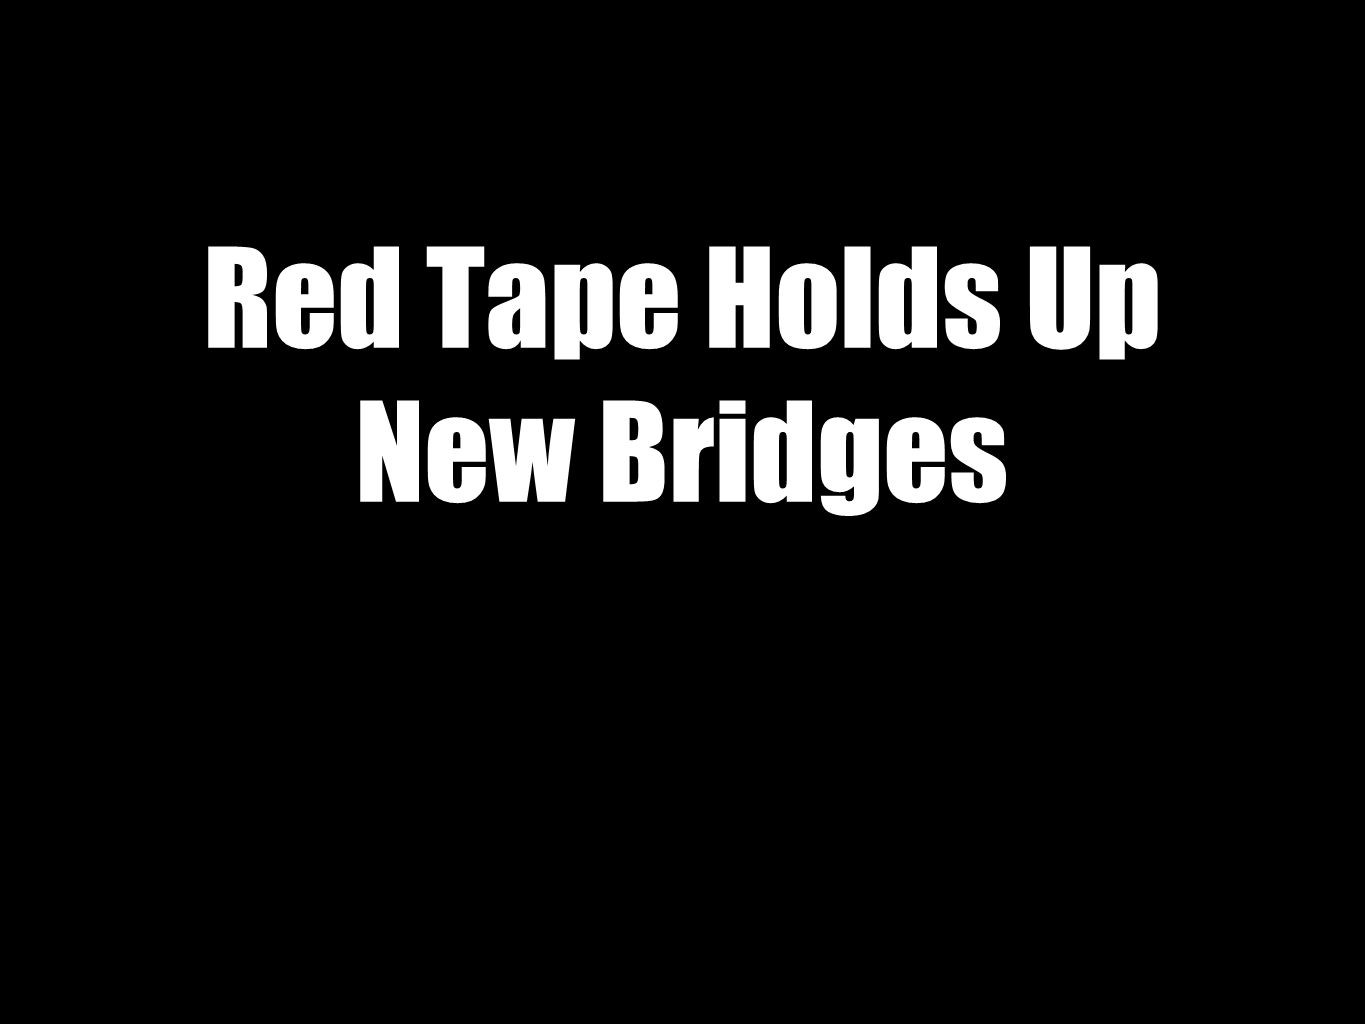 Red Tape Holds Up New Bridges